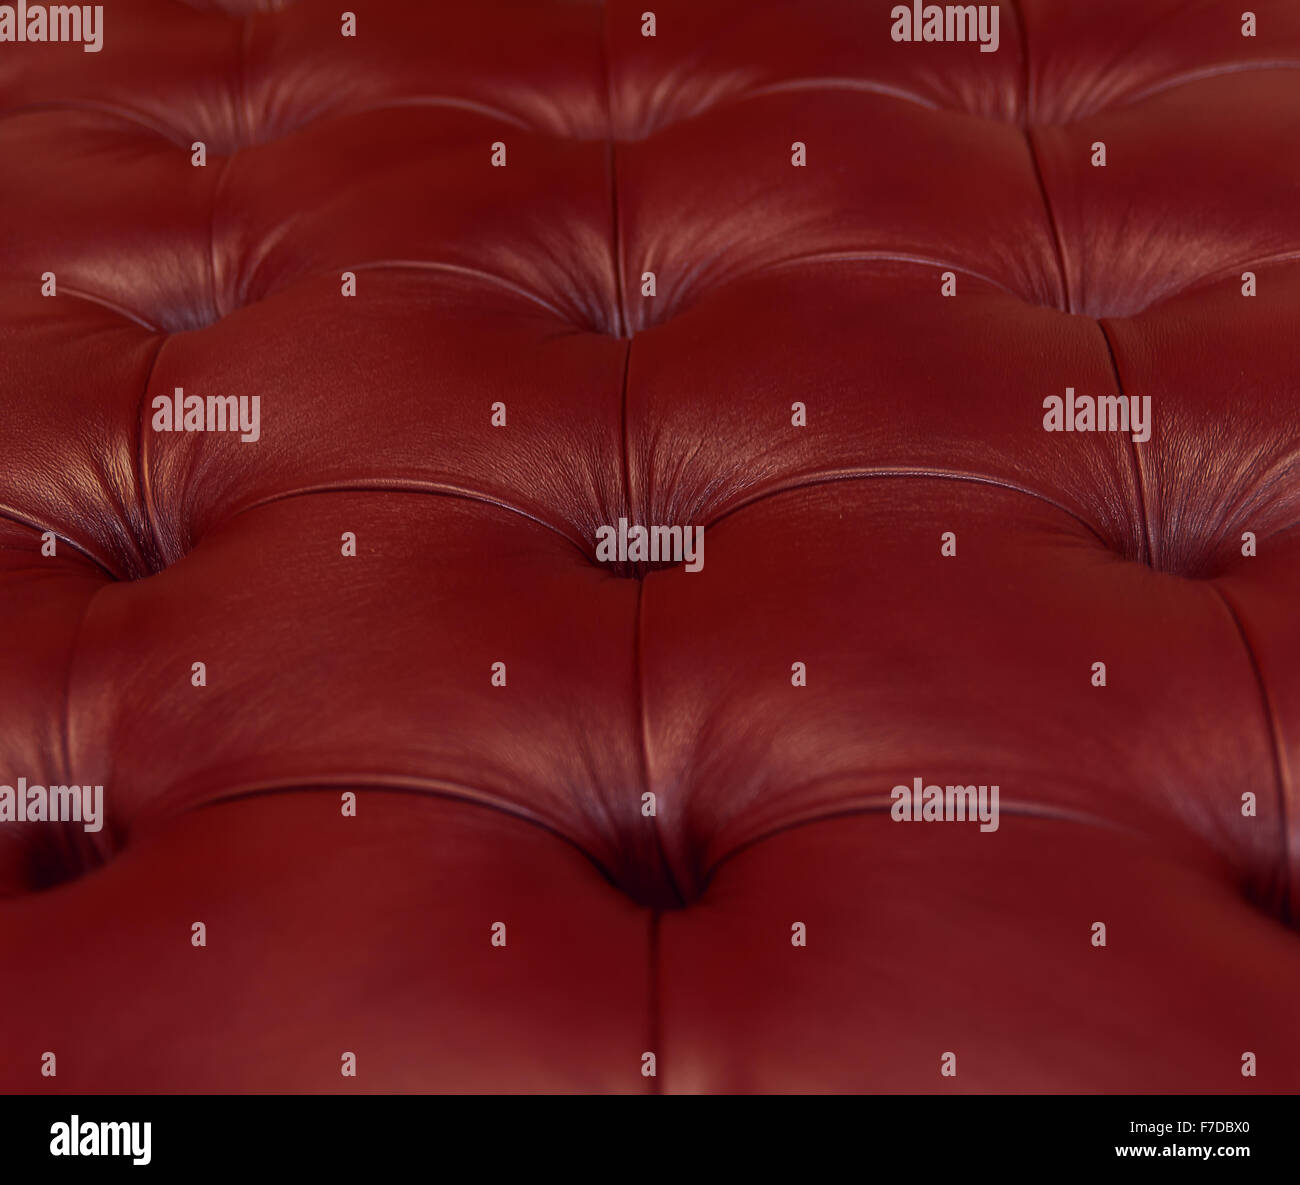 Quilted upholstery. - Stock Image